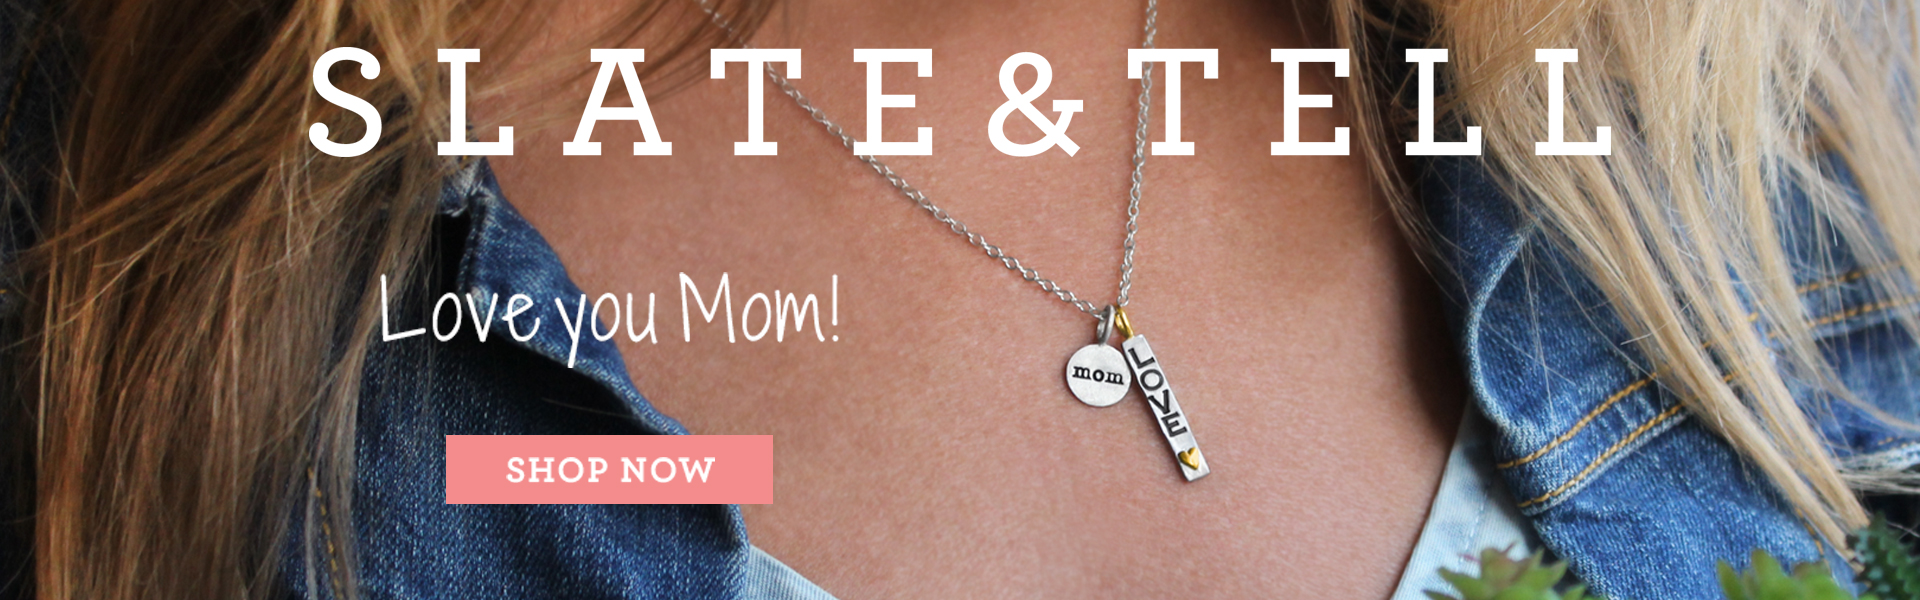 Slate and Tell Personalize Mothers Day!